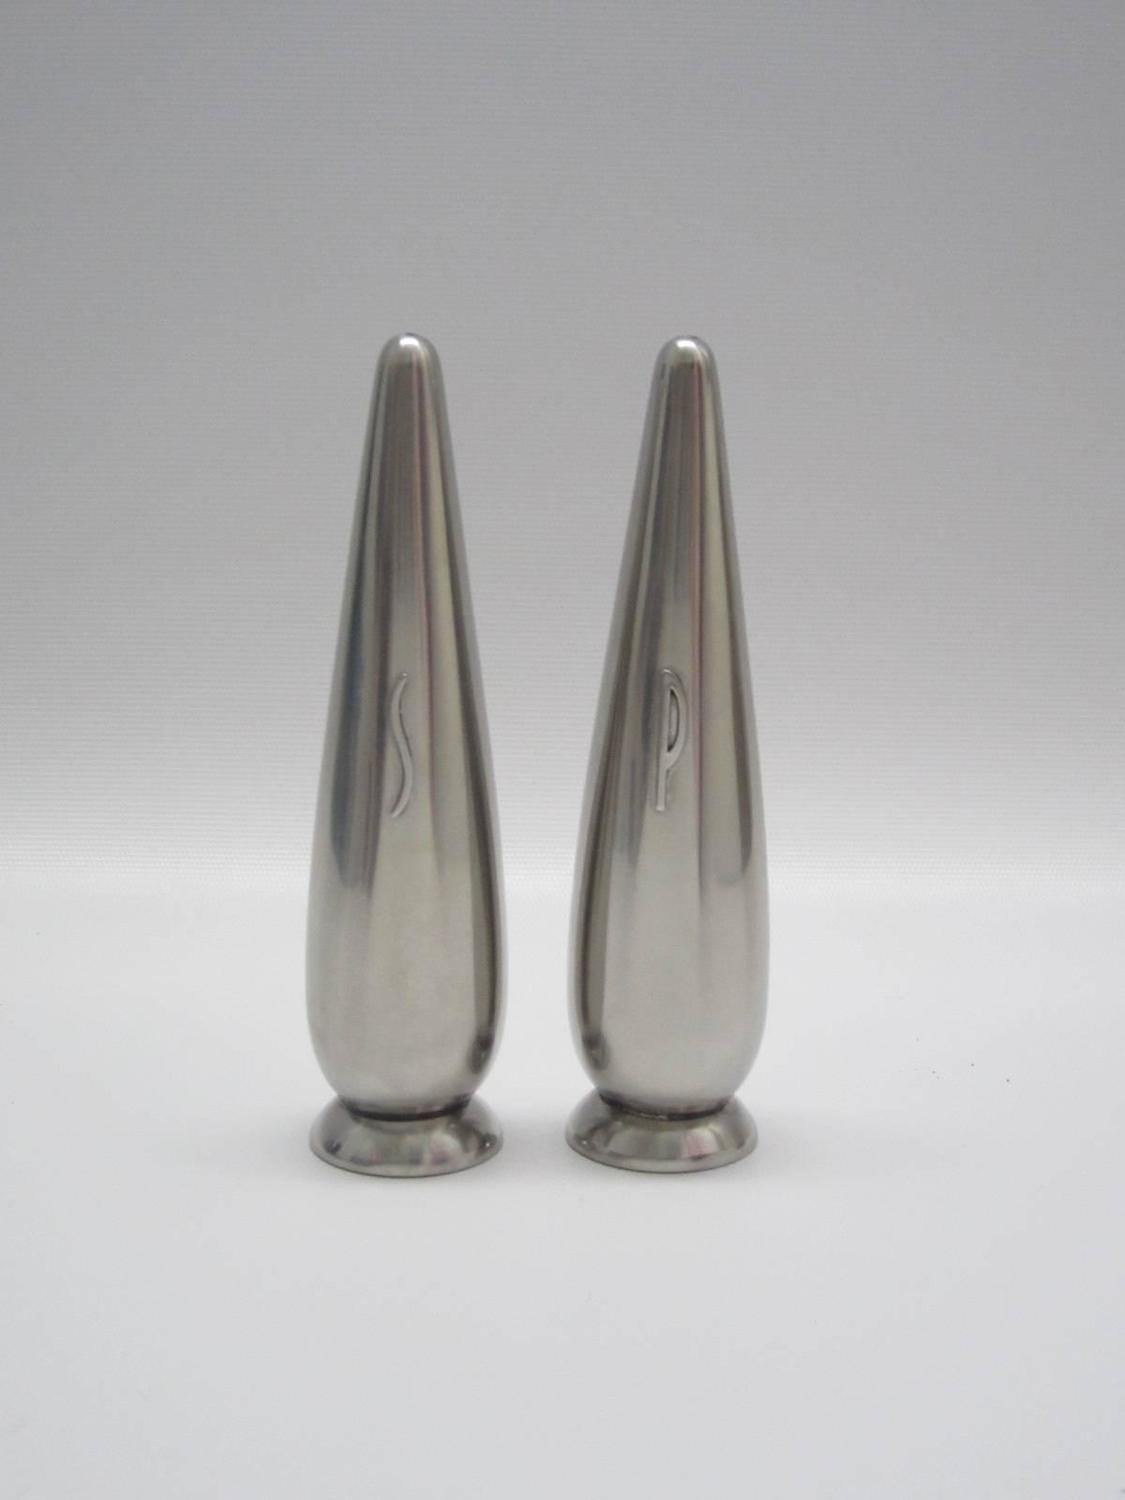 Modern Salt And Pepper Shakers Danish Modern Steel Salt And Pepper Shakers For Sale At